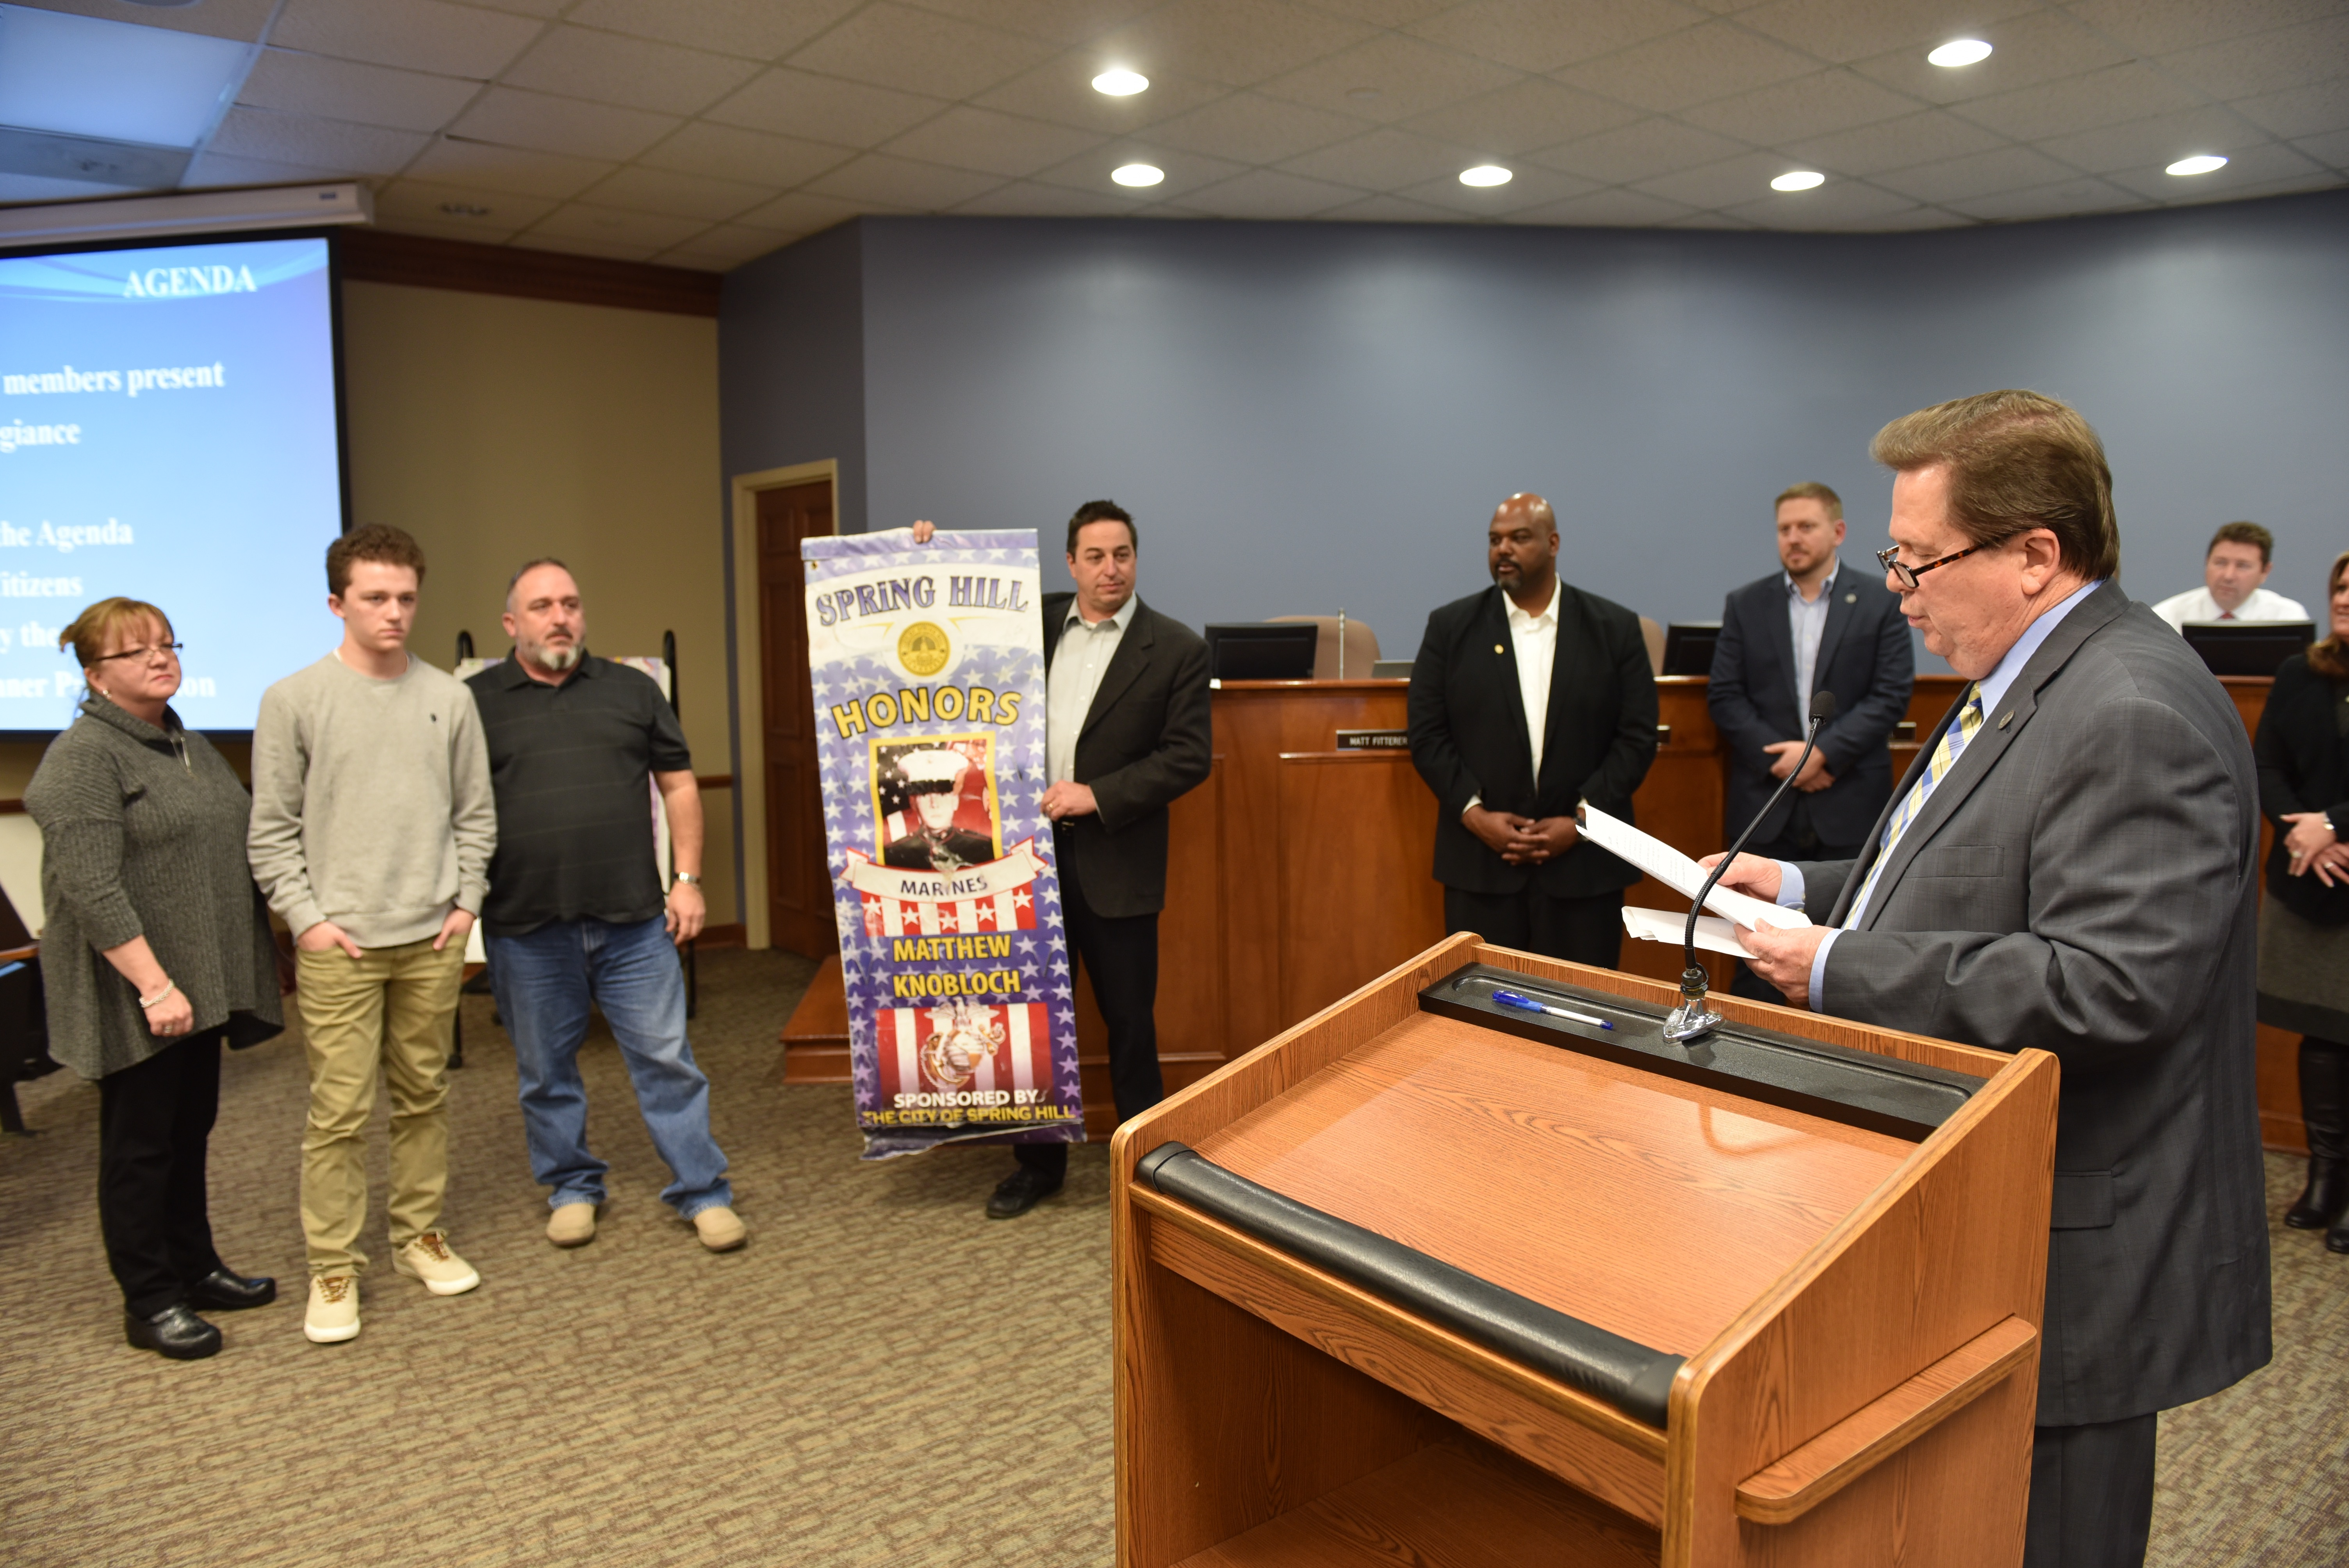 Mayor Graham presents a military service banner to Matthew Knobloch, U.S. Marine, at the Board of Mayor and Aldermen meeting